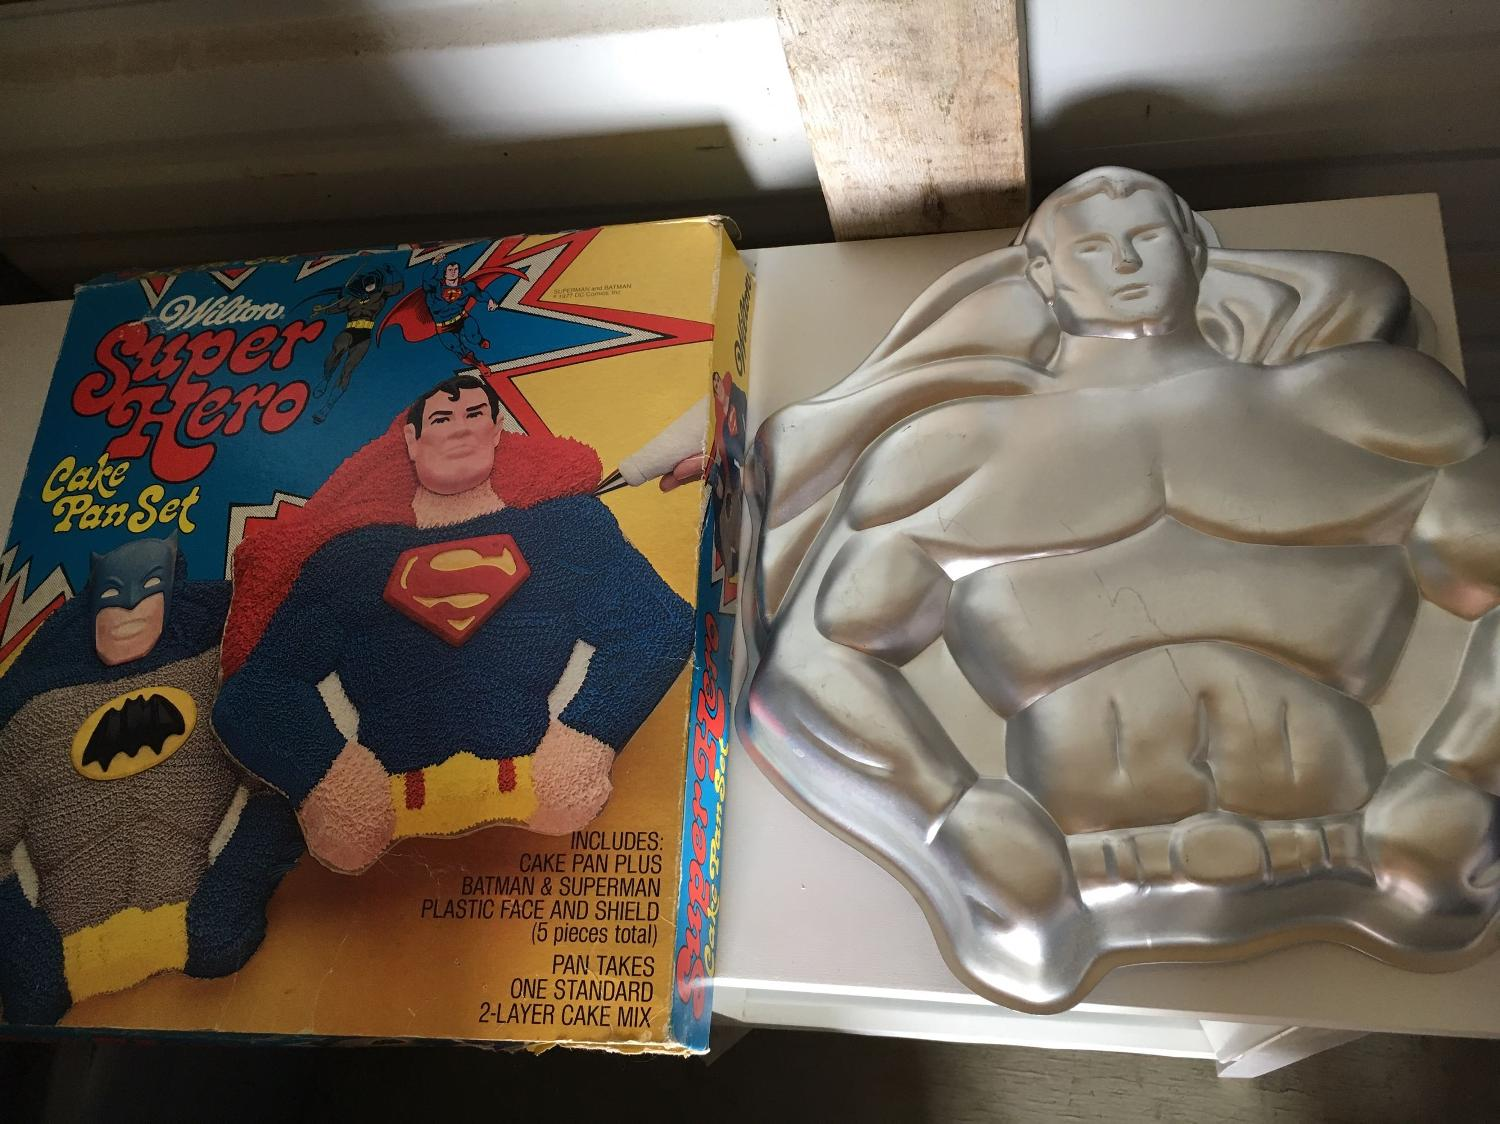 Find More 1977 Superman Cake Pan With Original Box For Sale At Up To 90 Off